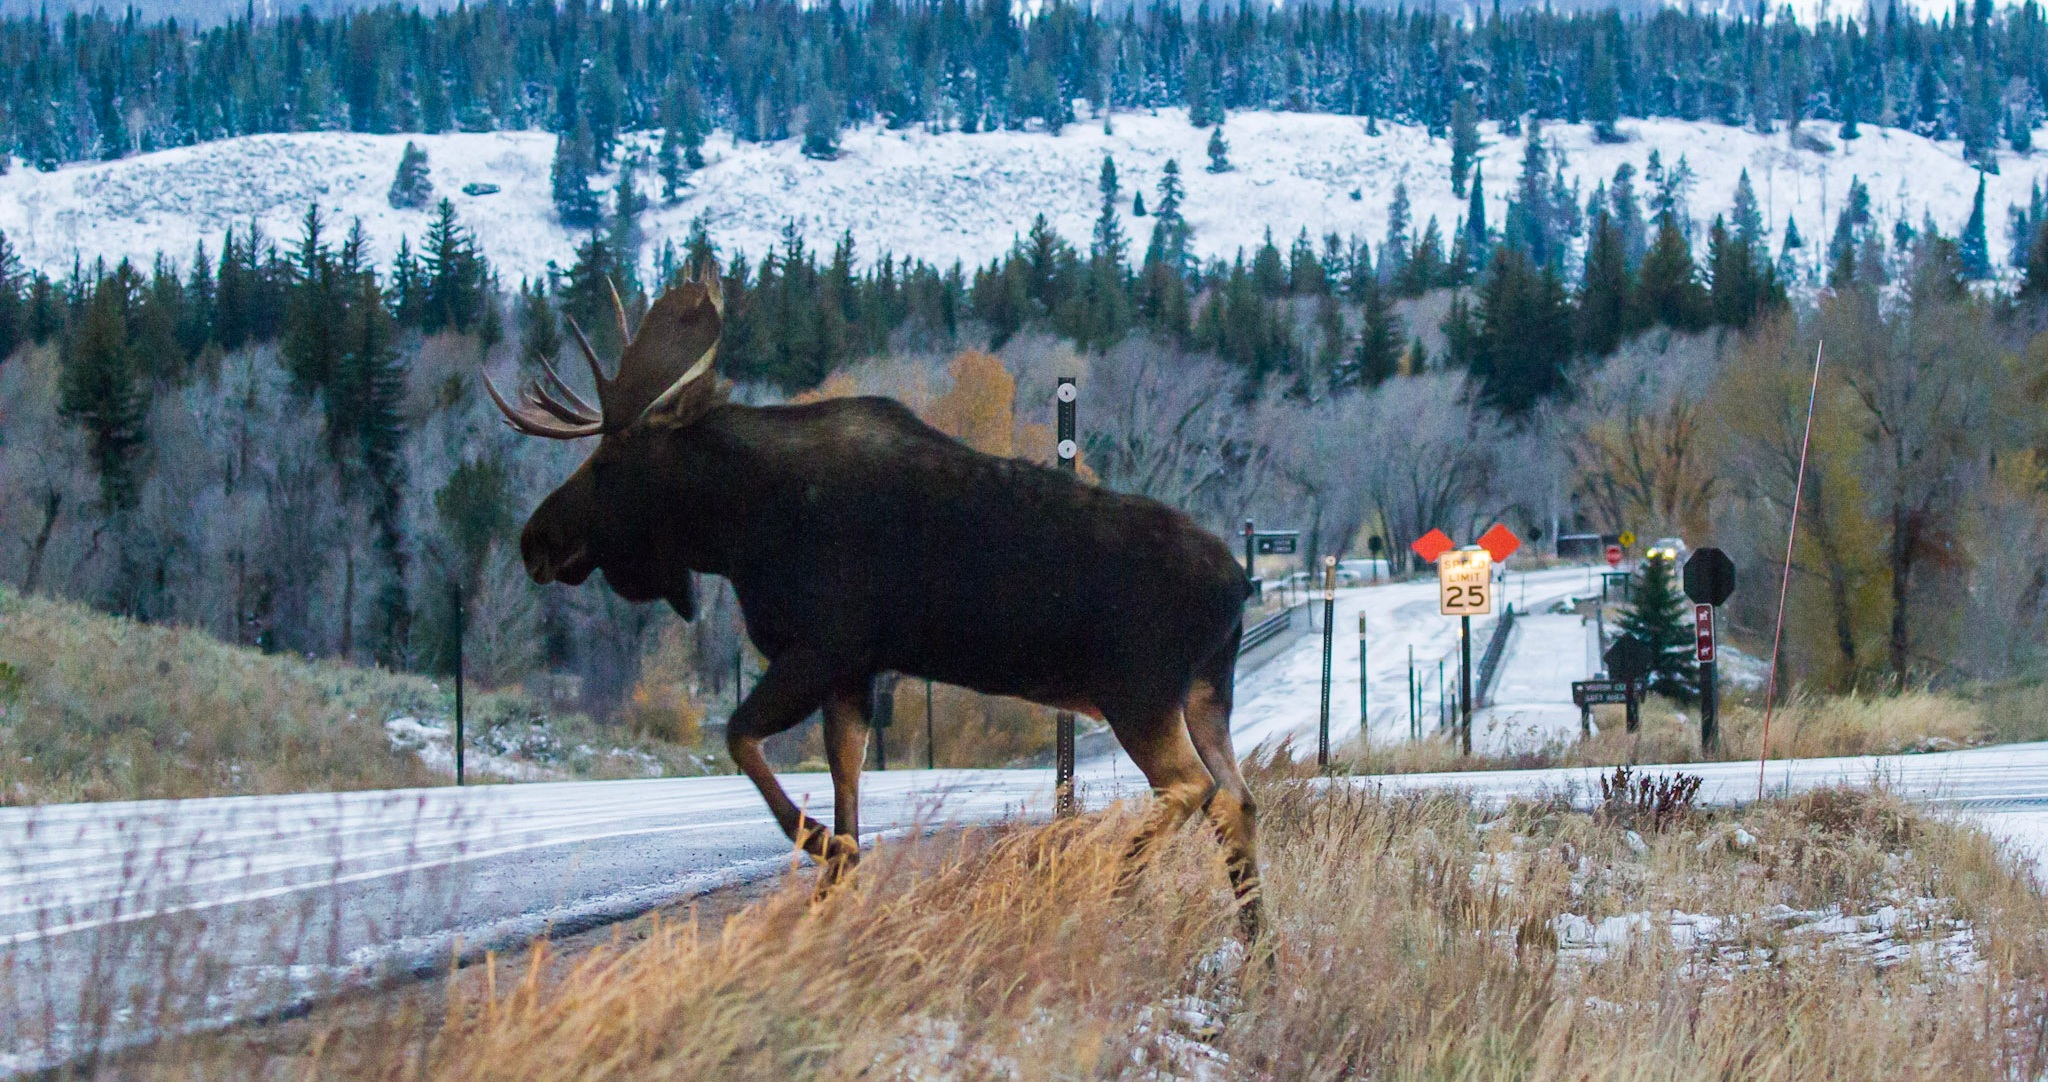 A moose attempts to cross a road near Jackson, Wyoming. (Photo Josh Metten.)